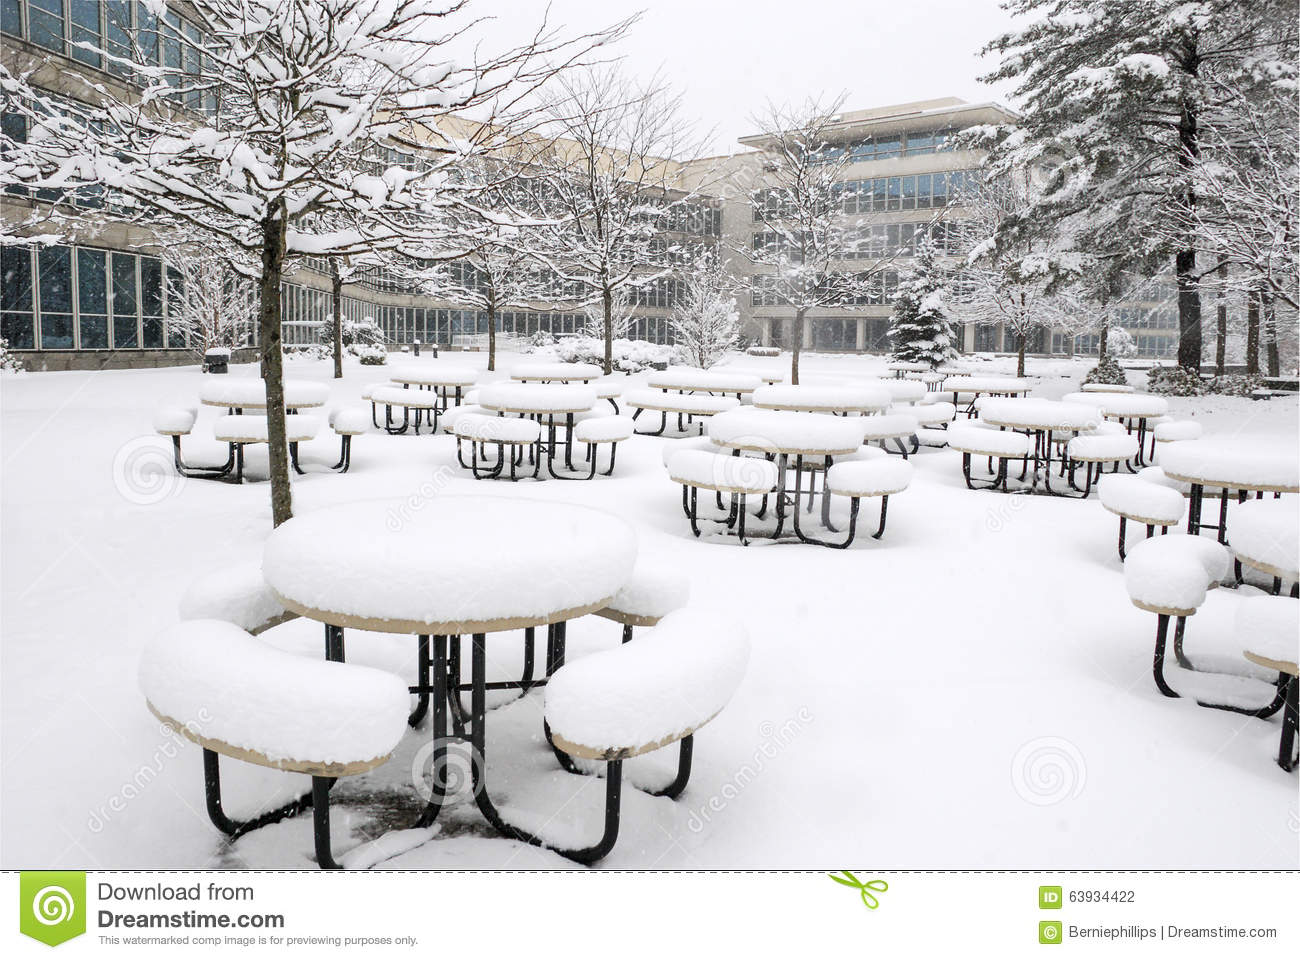 Snow Covered Patio Stock Photo  Image 63934422. Discount Patio Furniture Hollywood Florida. Patio Homes For Sale Washington County Pa. Building A Patio Next To A Tree. Patio Paving Centre Cramlington. Outdoor Furniture Shop Kuala Lumpur. Building A Patio Step. Pavers Patio Designs Pictures. Small Covered Patio Designs